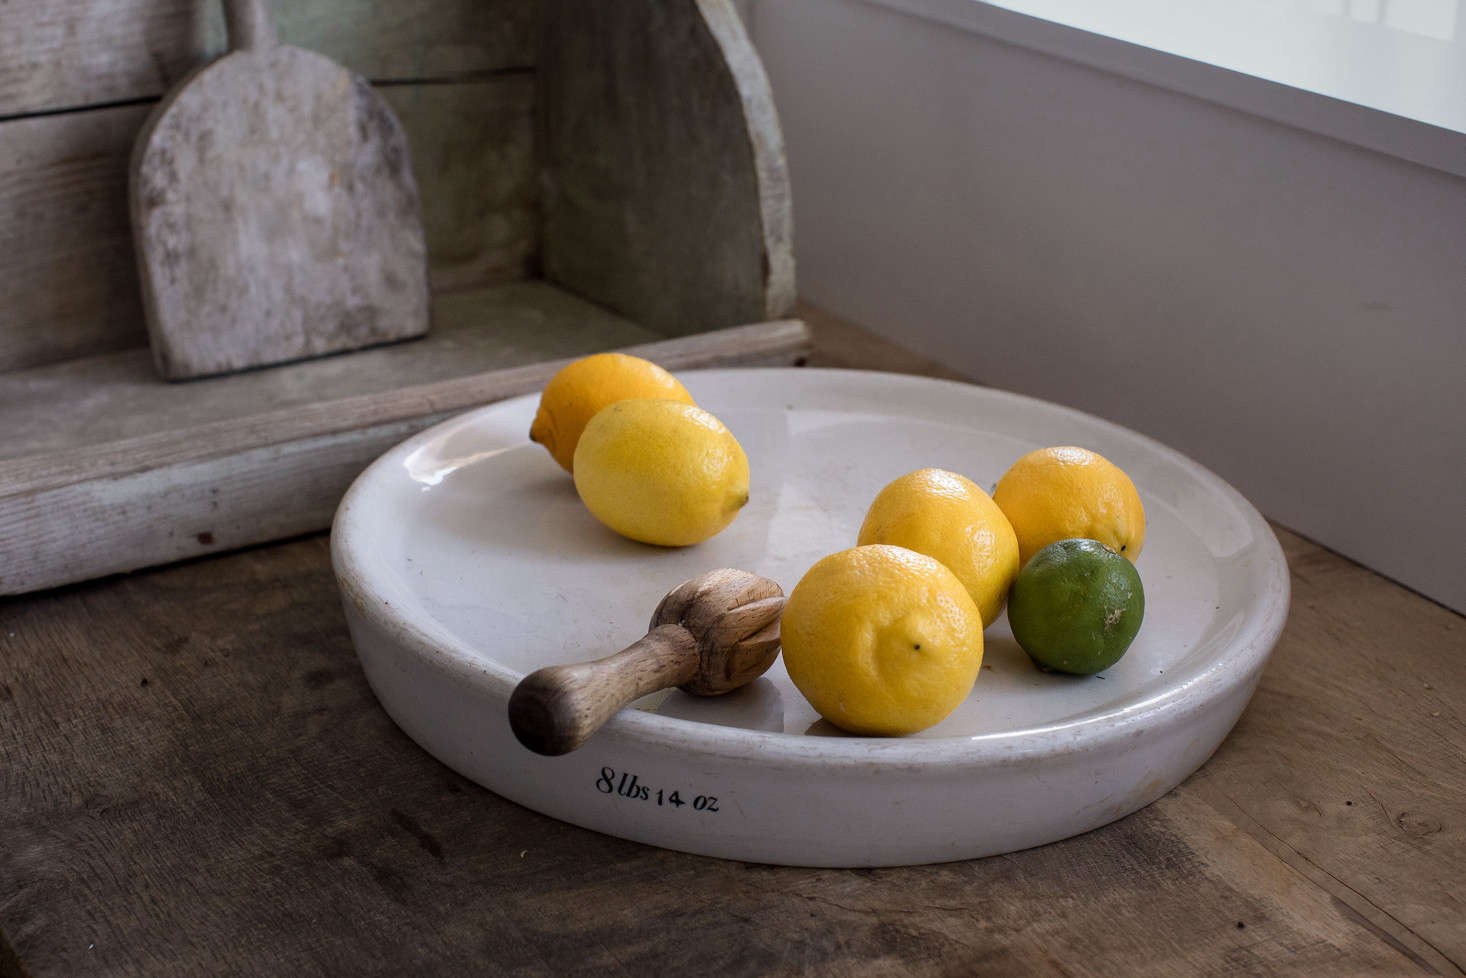 The couple repurposed an old English scale weight as a tray.